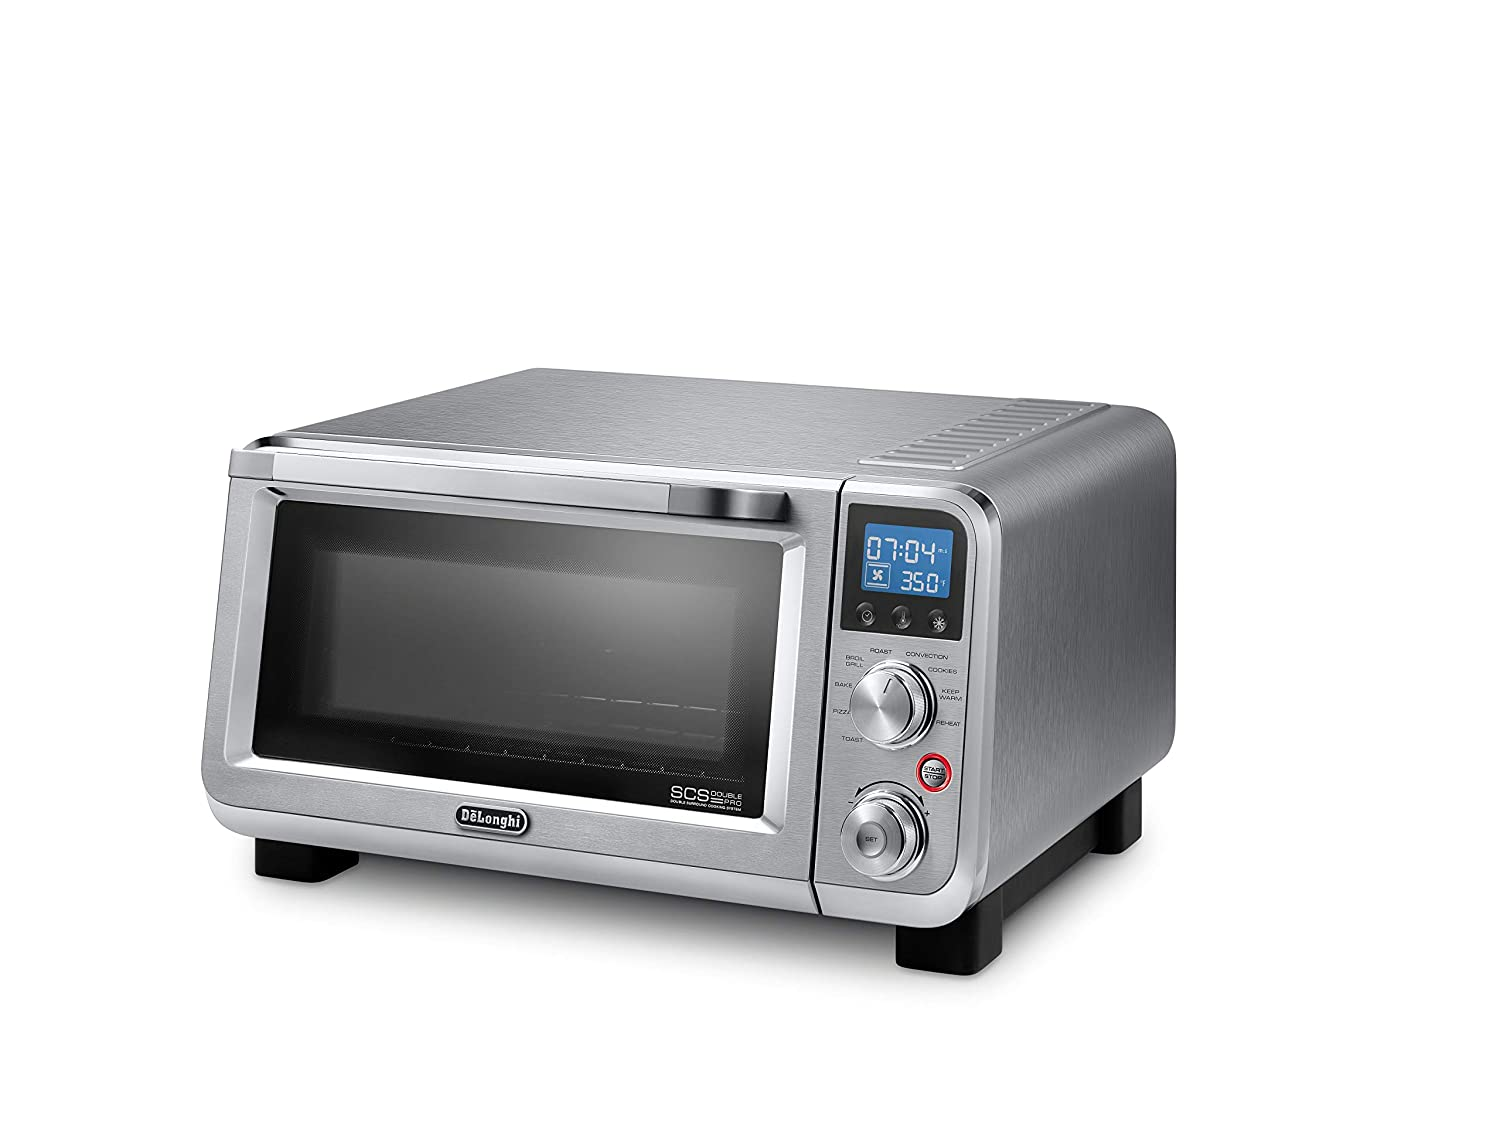 De Longhi Livenza Compact 1800W Countertop Convection Toaster Oven, 9 Presets Roast, Broil, Bake, Easy to Use, 14L .5 cu ft , Stainless Steel, EO141150M